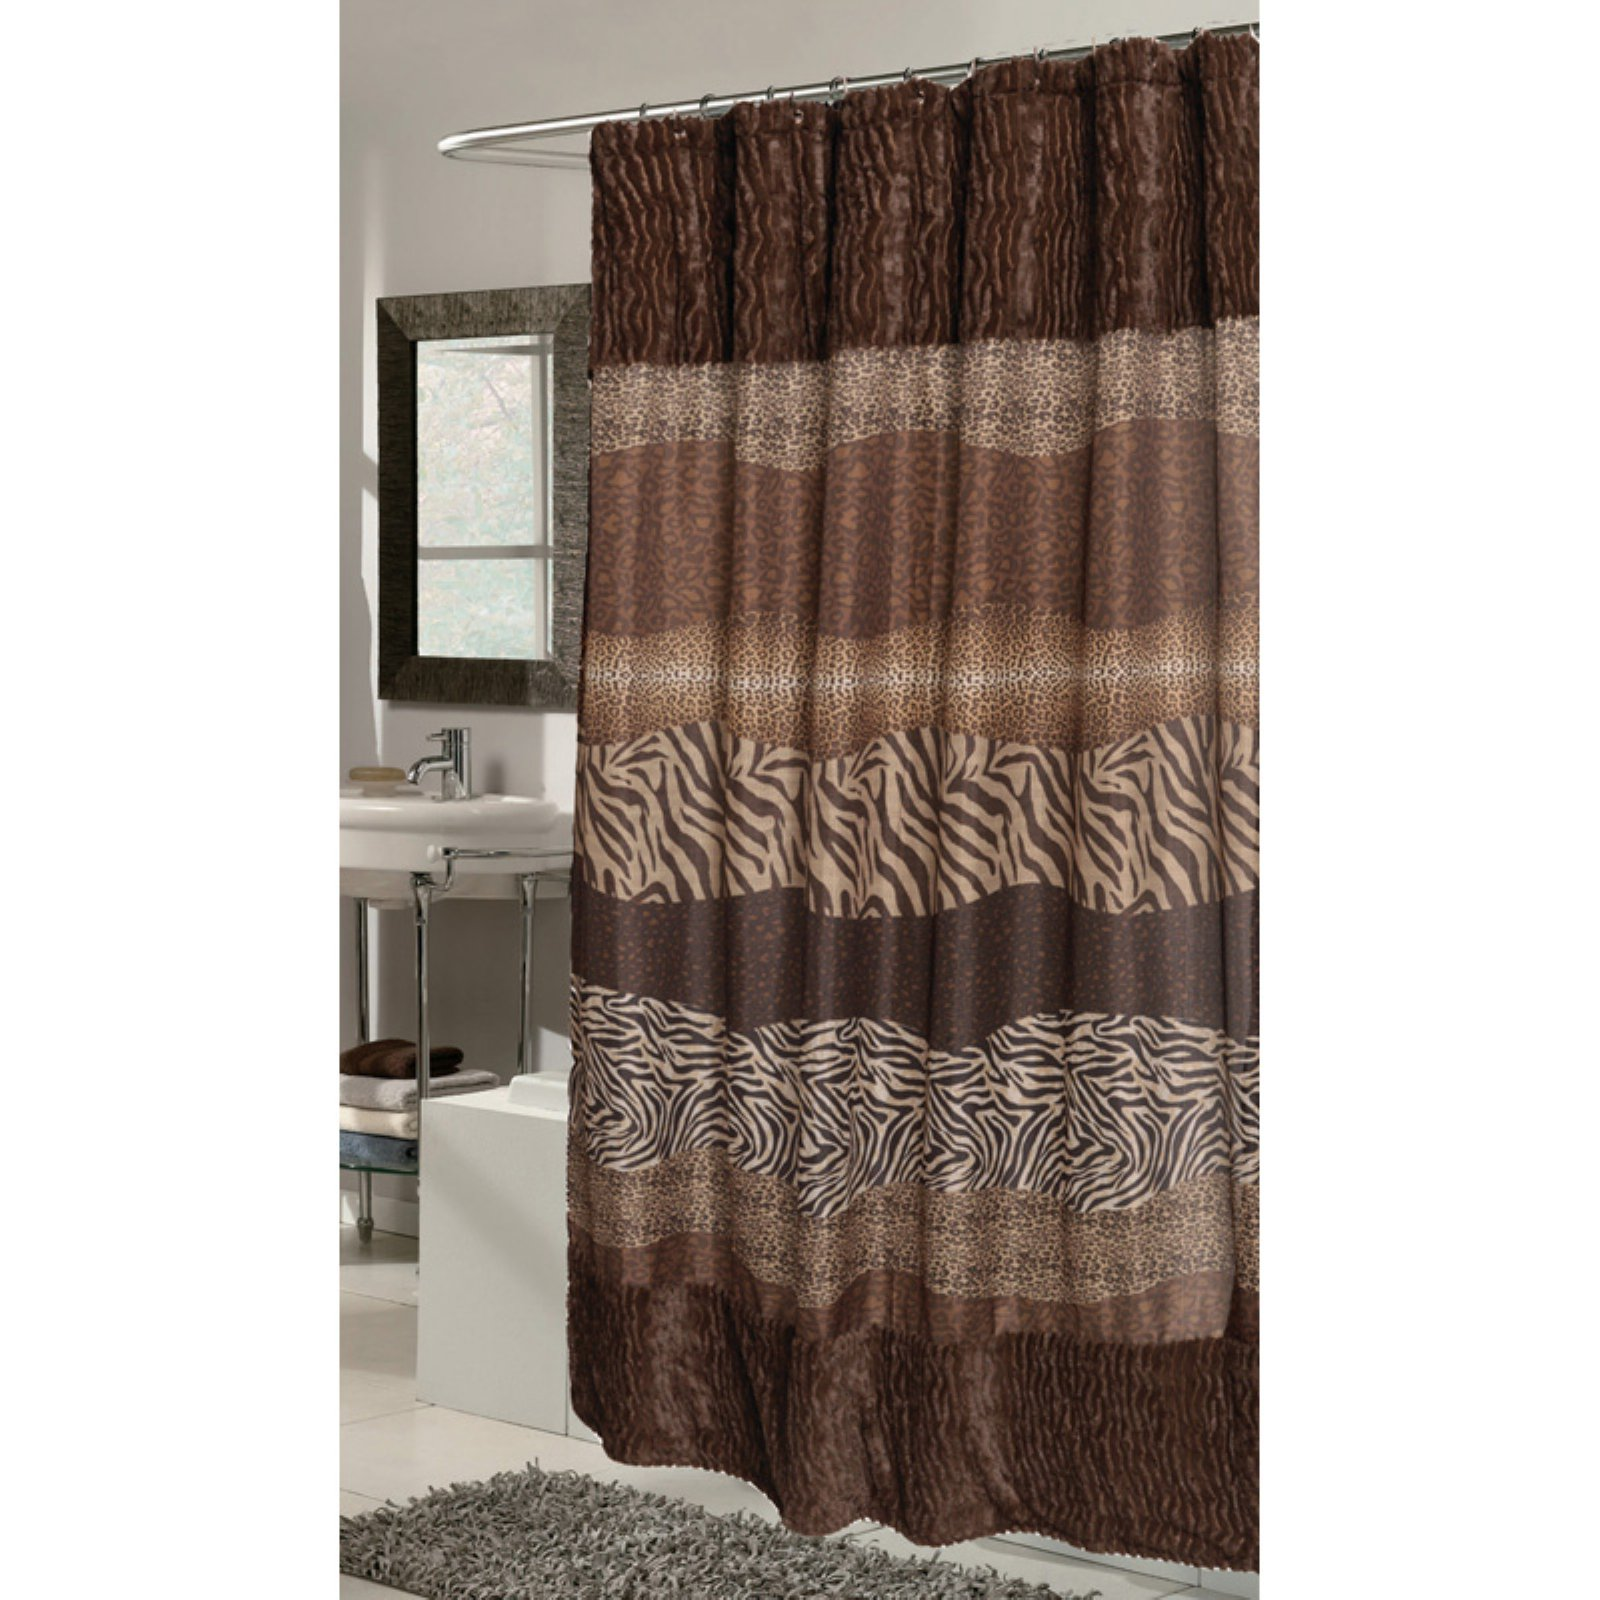 "Felina"" Faux Fur-Trimmed Shower Curtain"